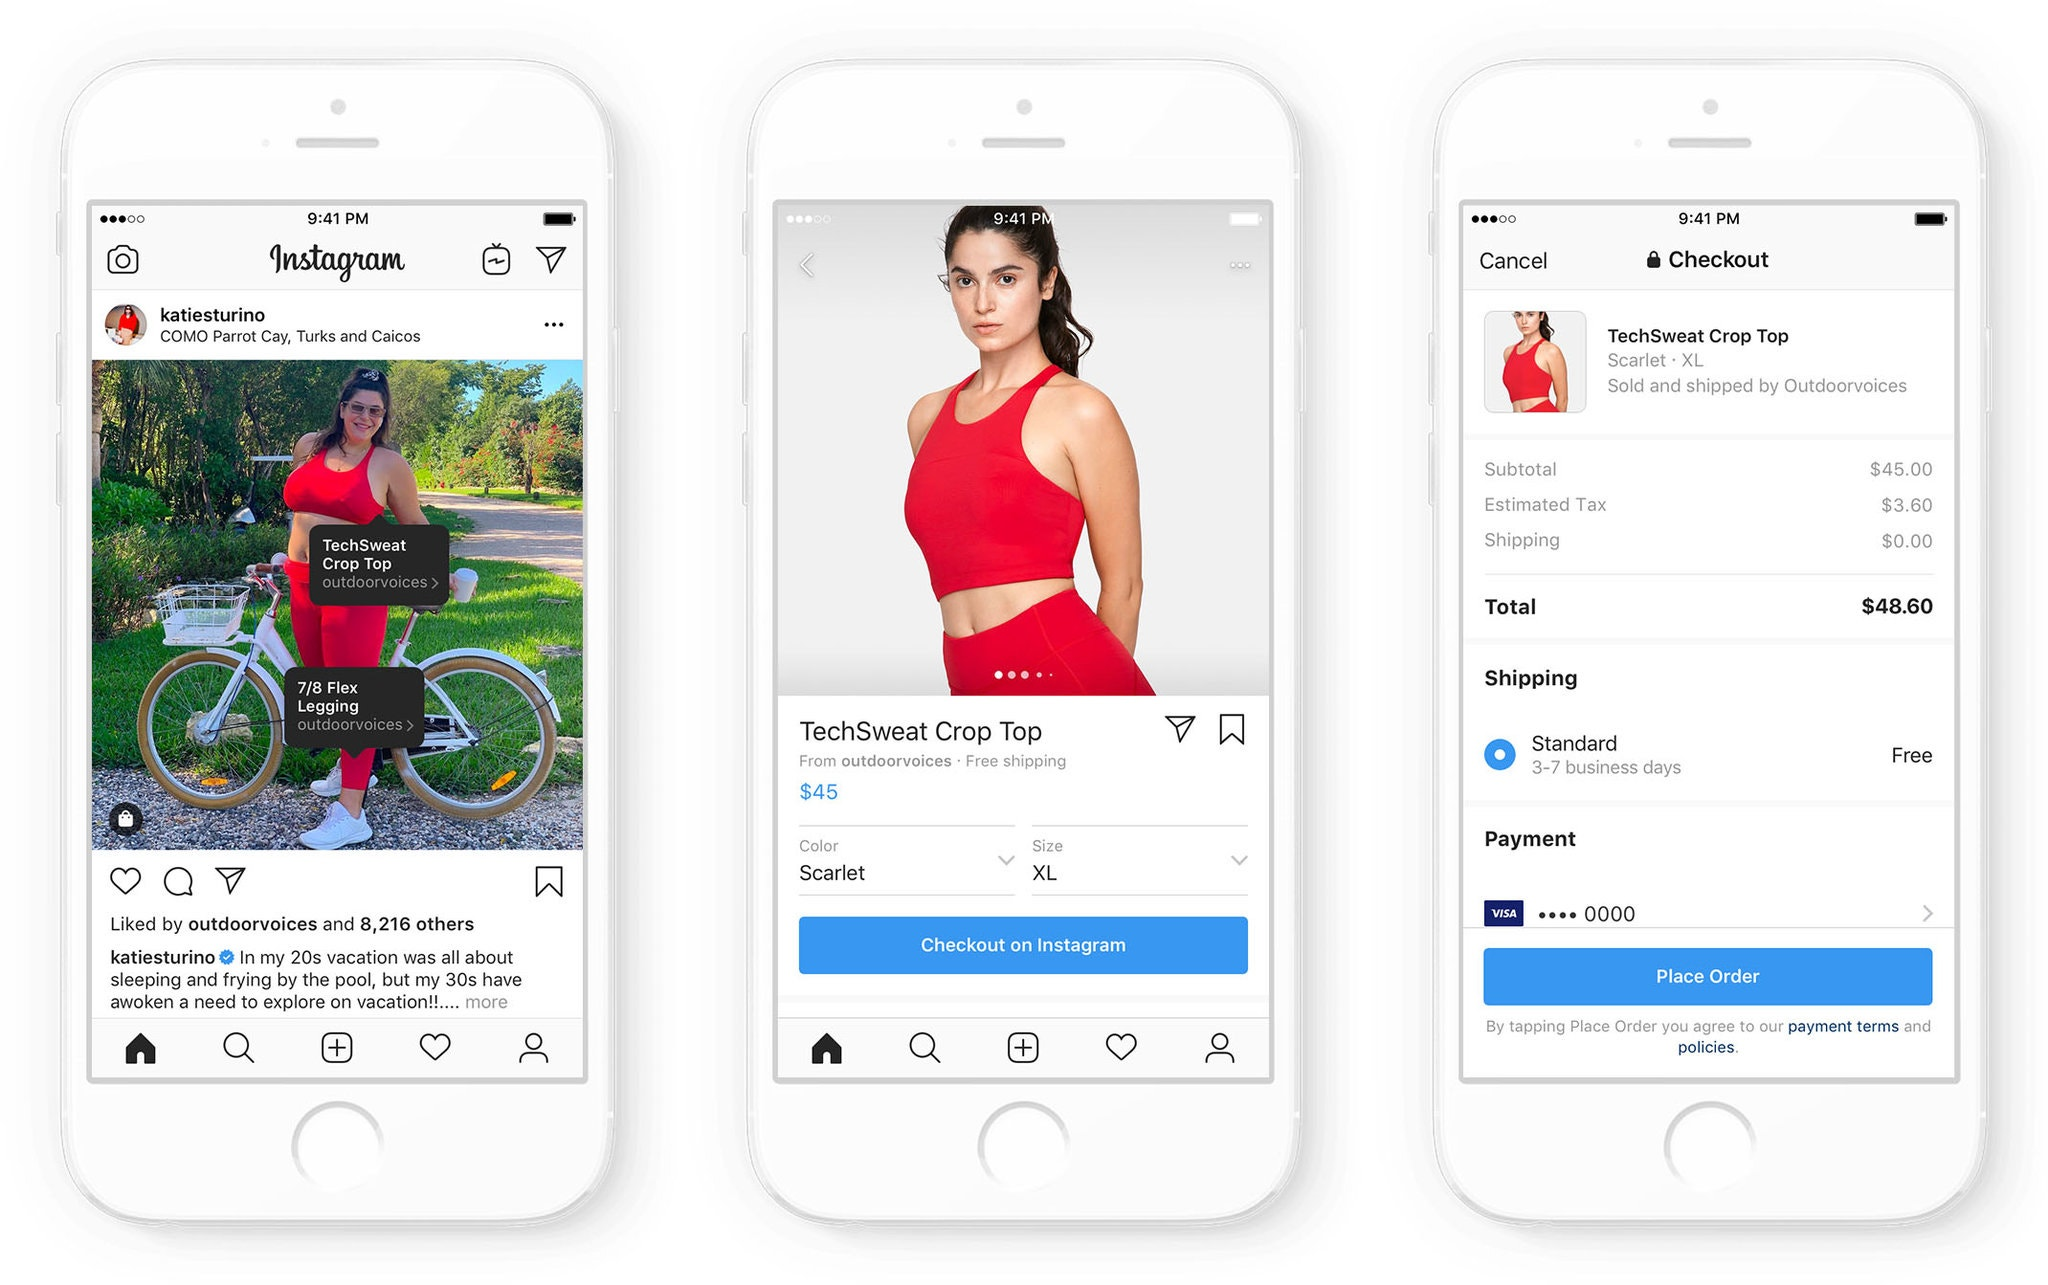 Instagram shopping example for small businesses